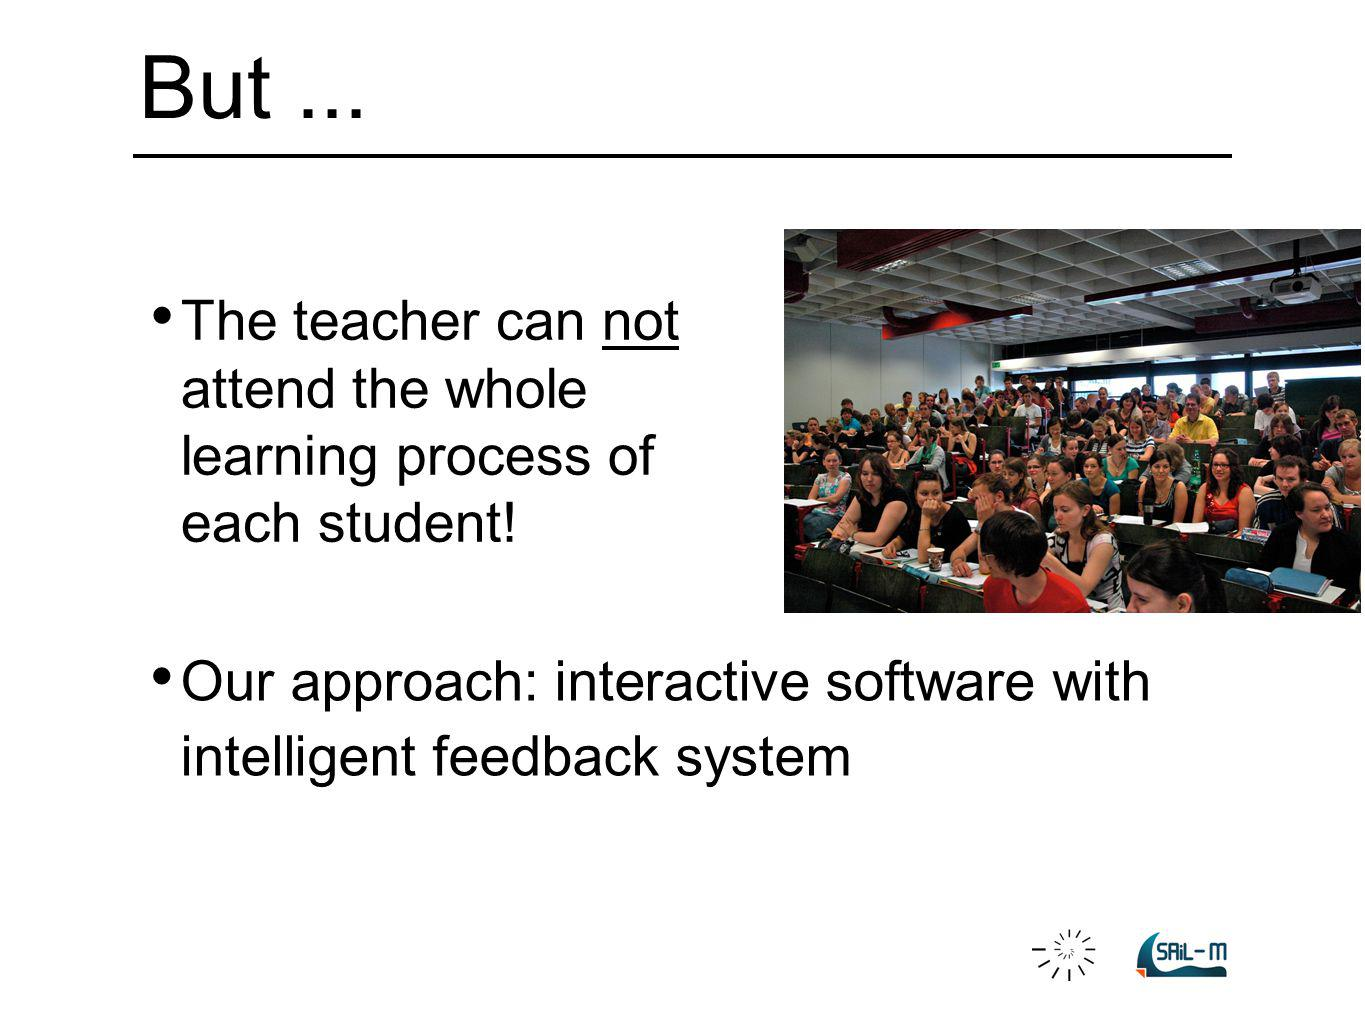 The teacher can not attend the whole learning process of each student! Our approach: interactive software with intelligent feedback system But...